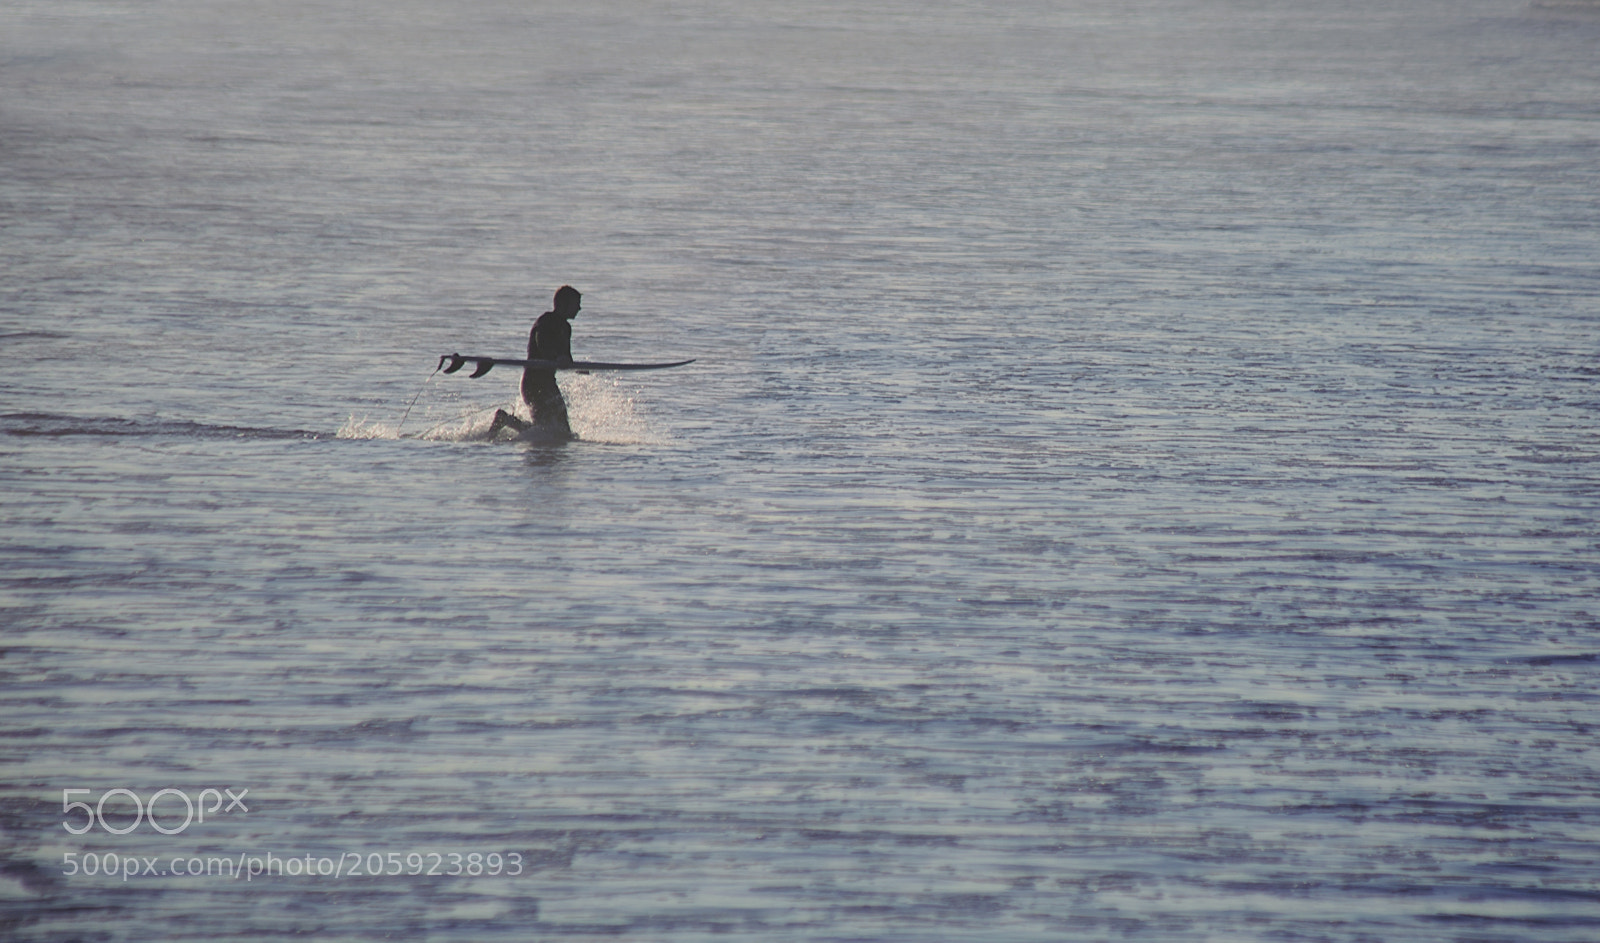 The surfer, Canon EOS 6D, Canon EF 90-300mm f/4.5-5.6